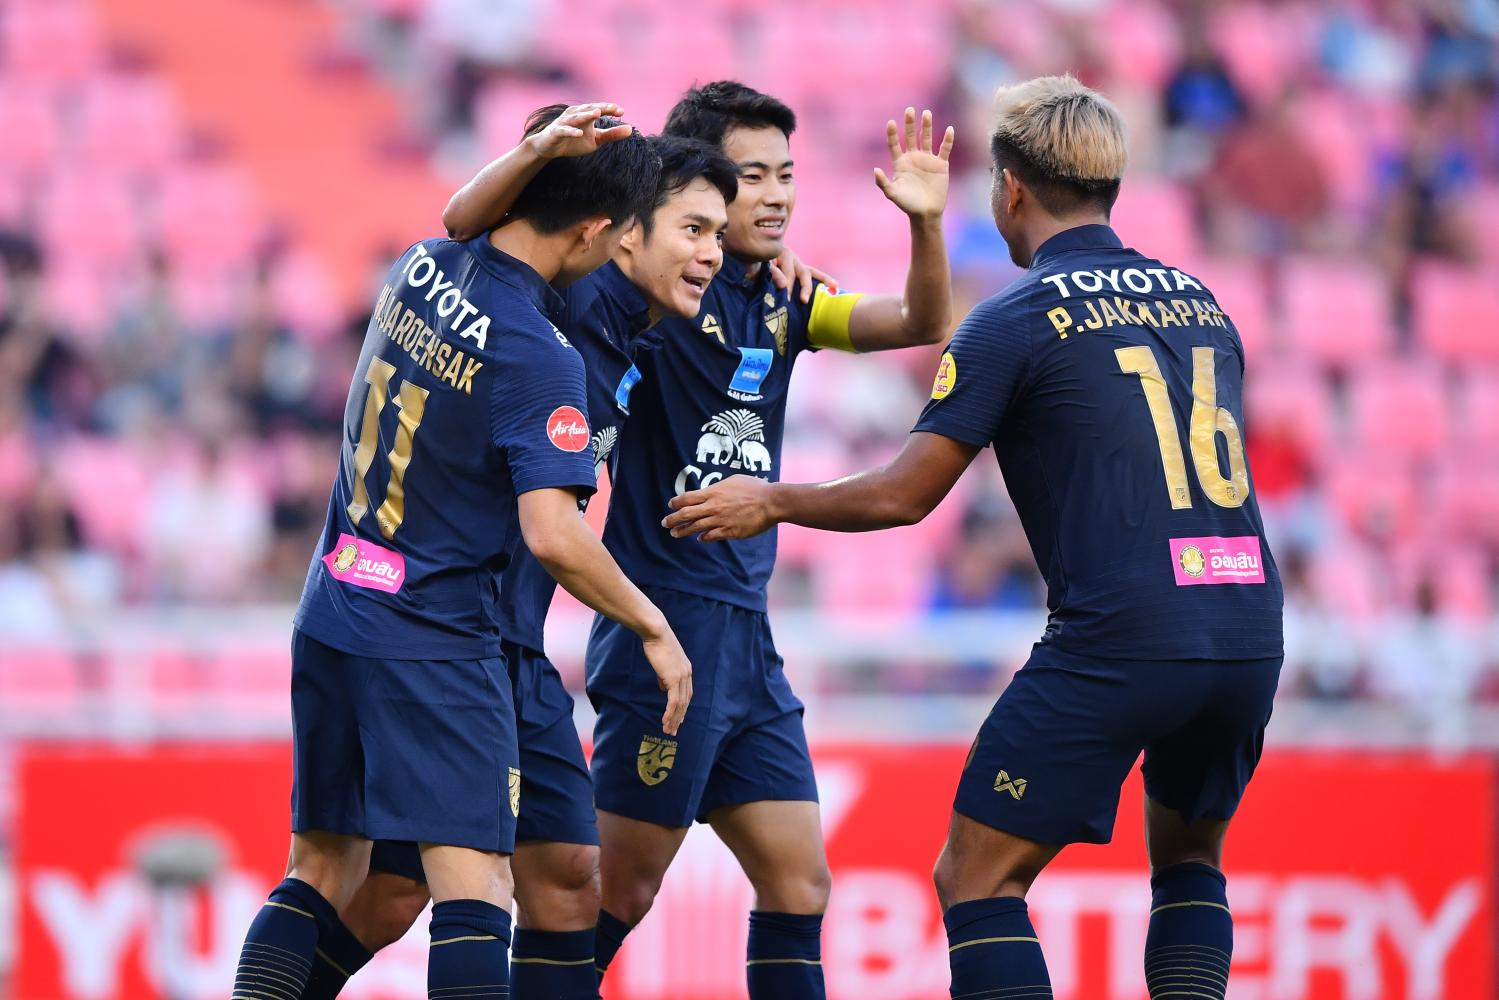 On target: Thailand's Panupong Polsa (second left) is congratulated by teammates after scoring against Thai League All-Stars on Saturday.